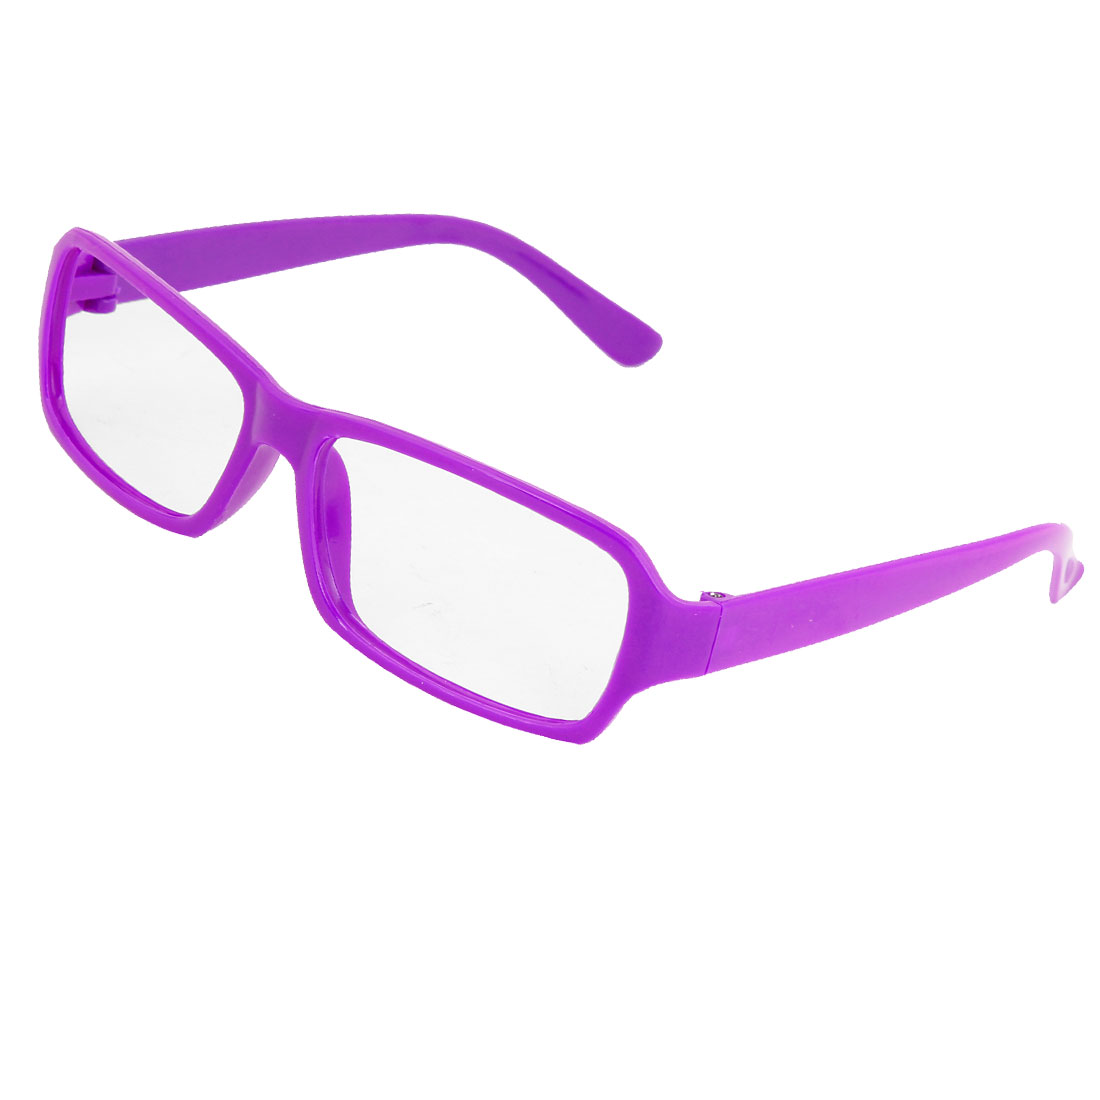 Plastic Arms Full Rim Rectangular Eyeglasses Frame Purple for Women